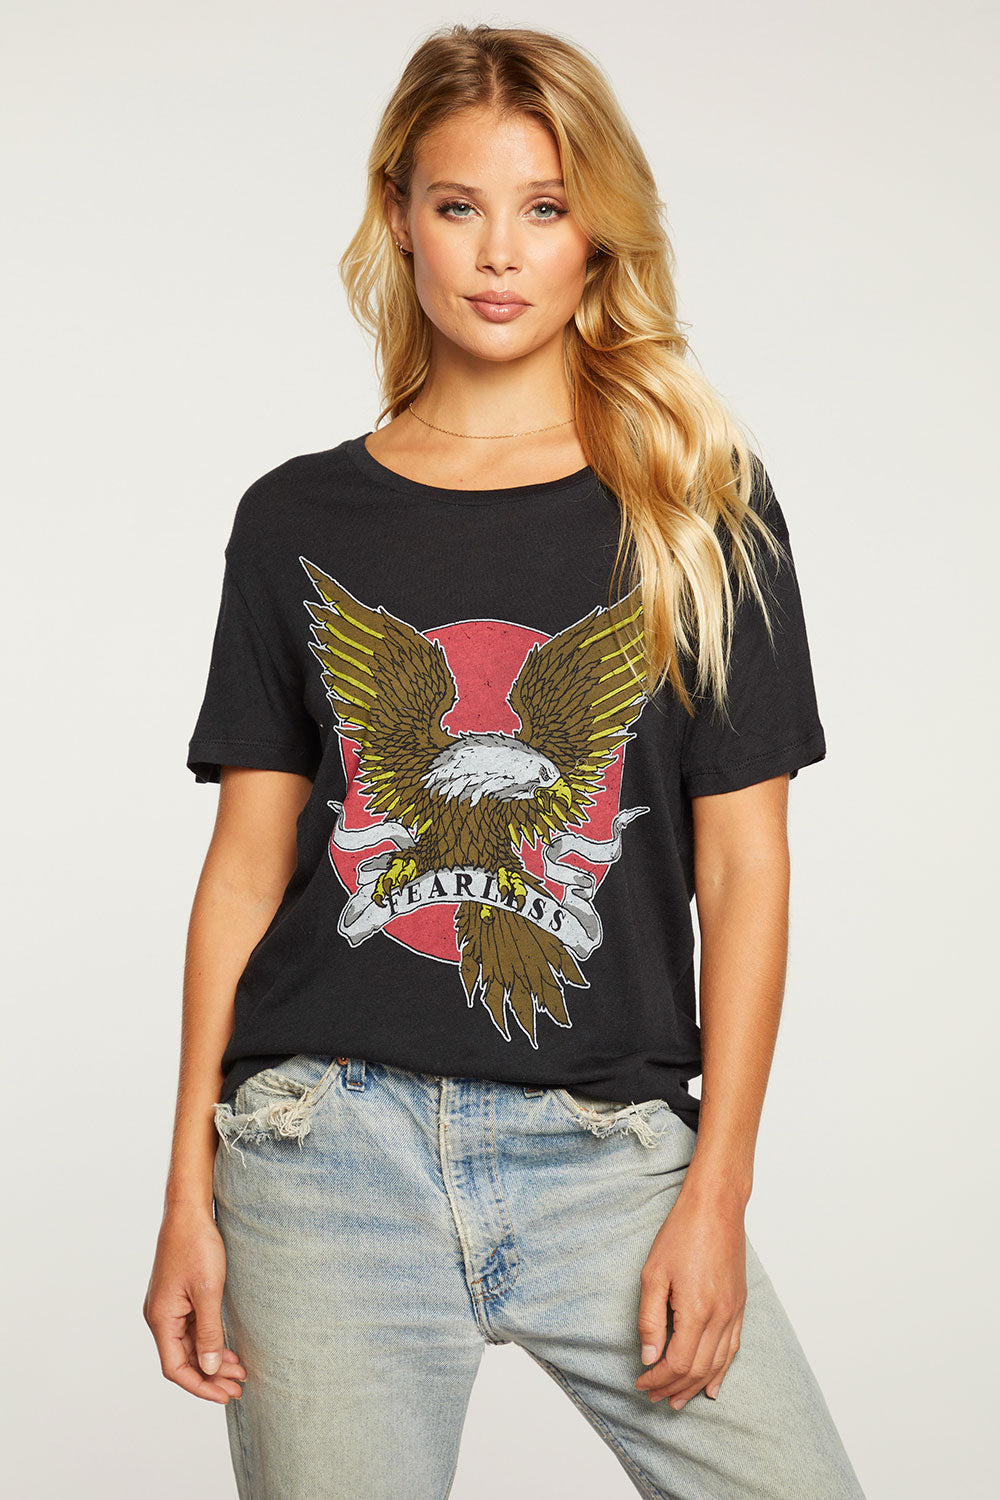 Eagle Icon WOMENS PLUS chaserbrand4.myshopify.com